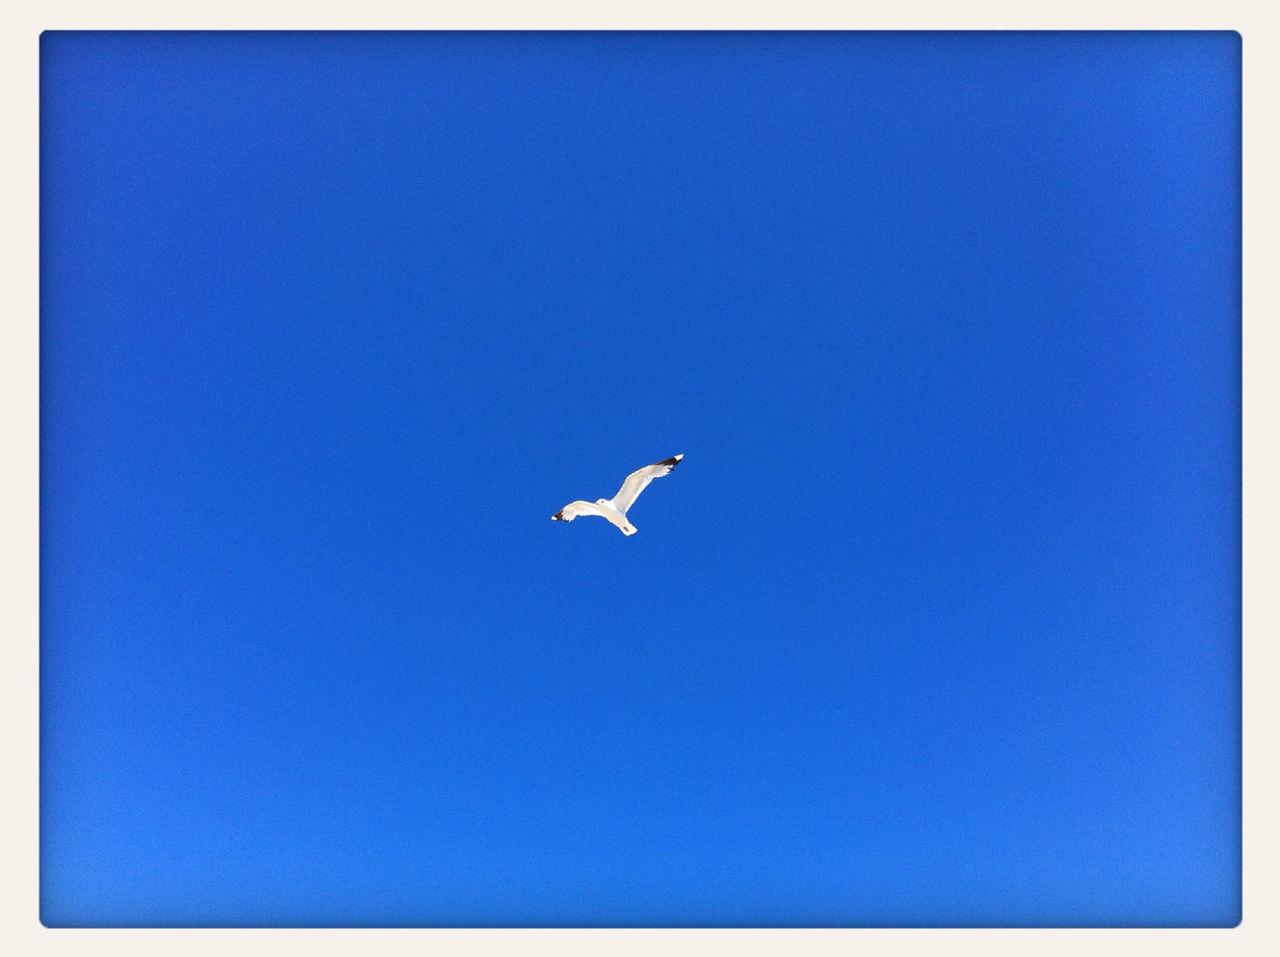 bird, copy space, one animal, clear sky, blue, animals in the wild, flying, spread wings, animal themes, low angle view, wildlife, mid-air, day, outdoors, no people, nature, full length